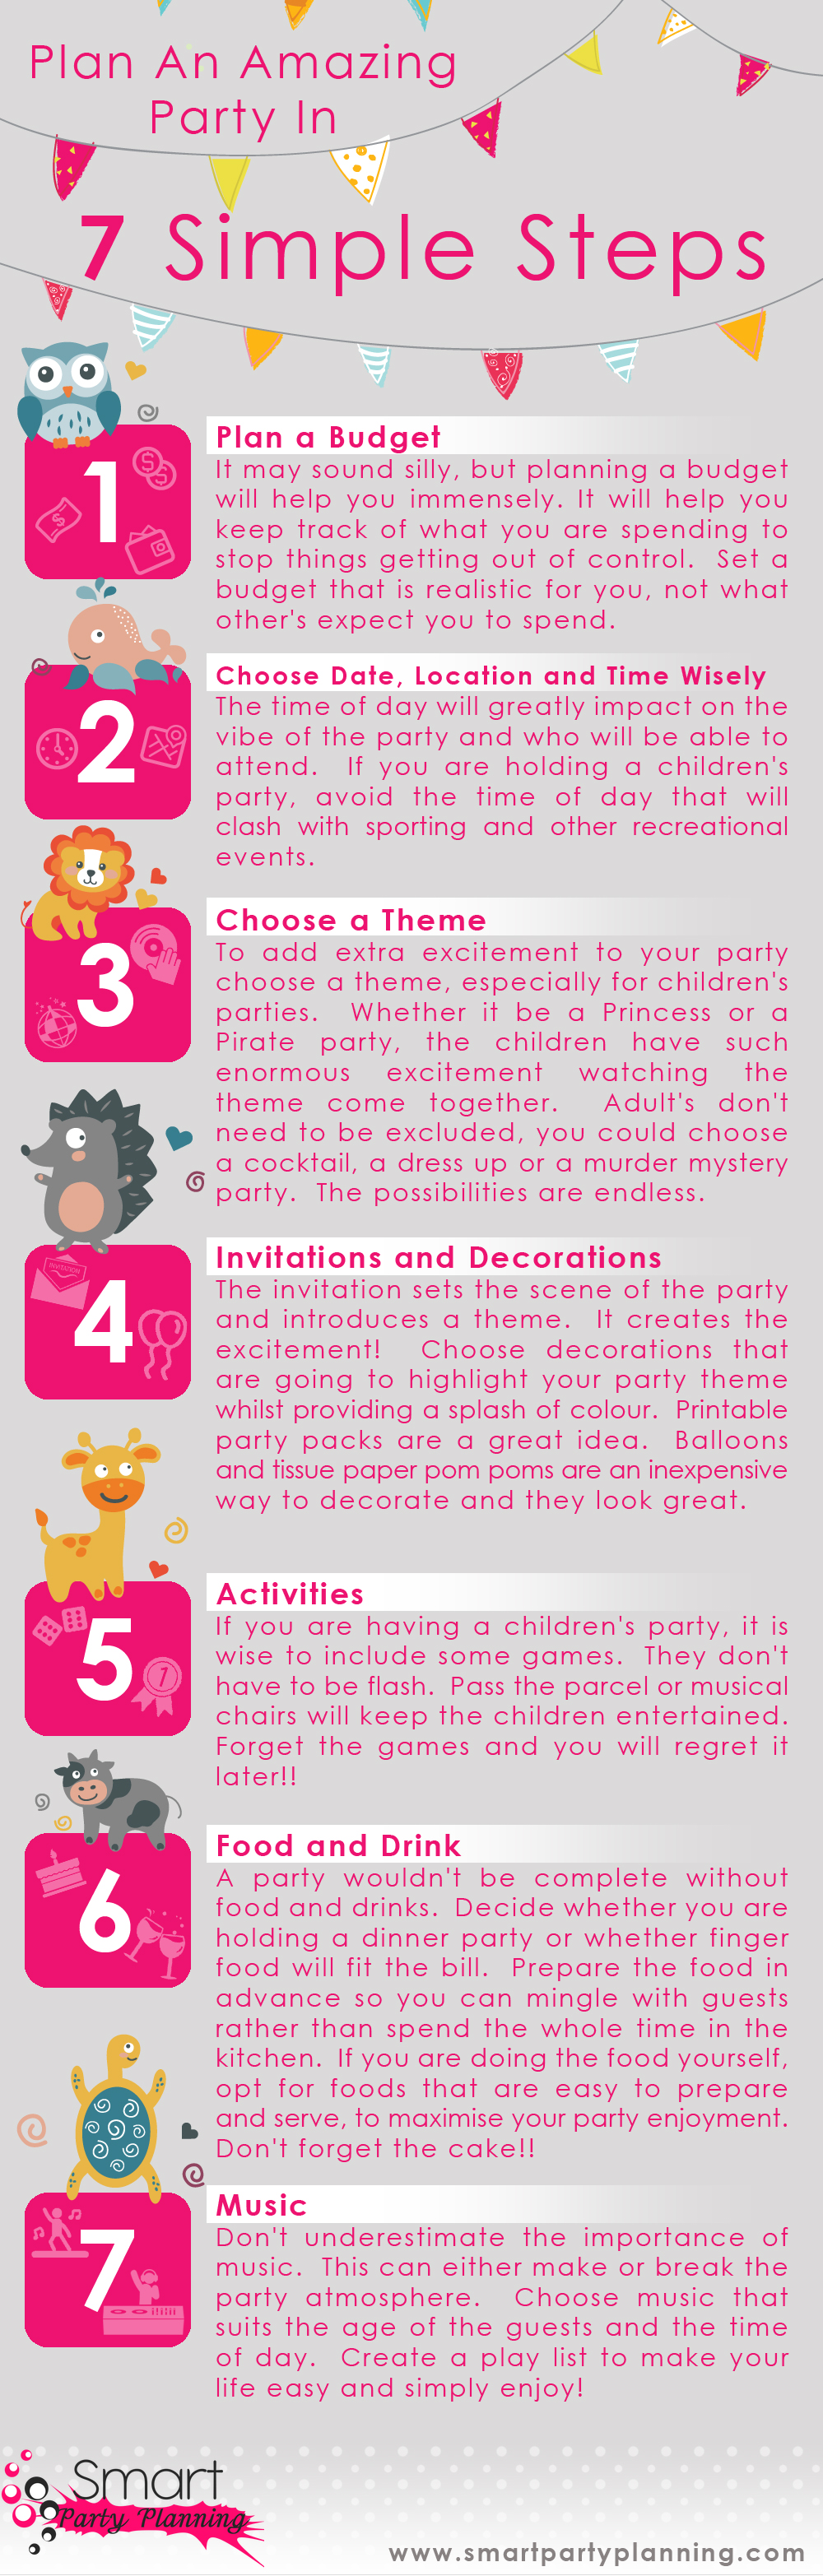 IPC1345 Restaurant Playground Equipment. Smart Party Planning